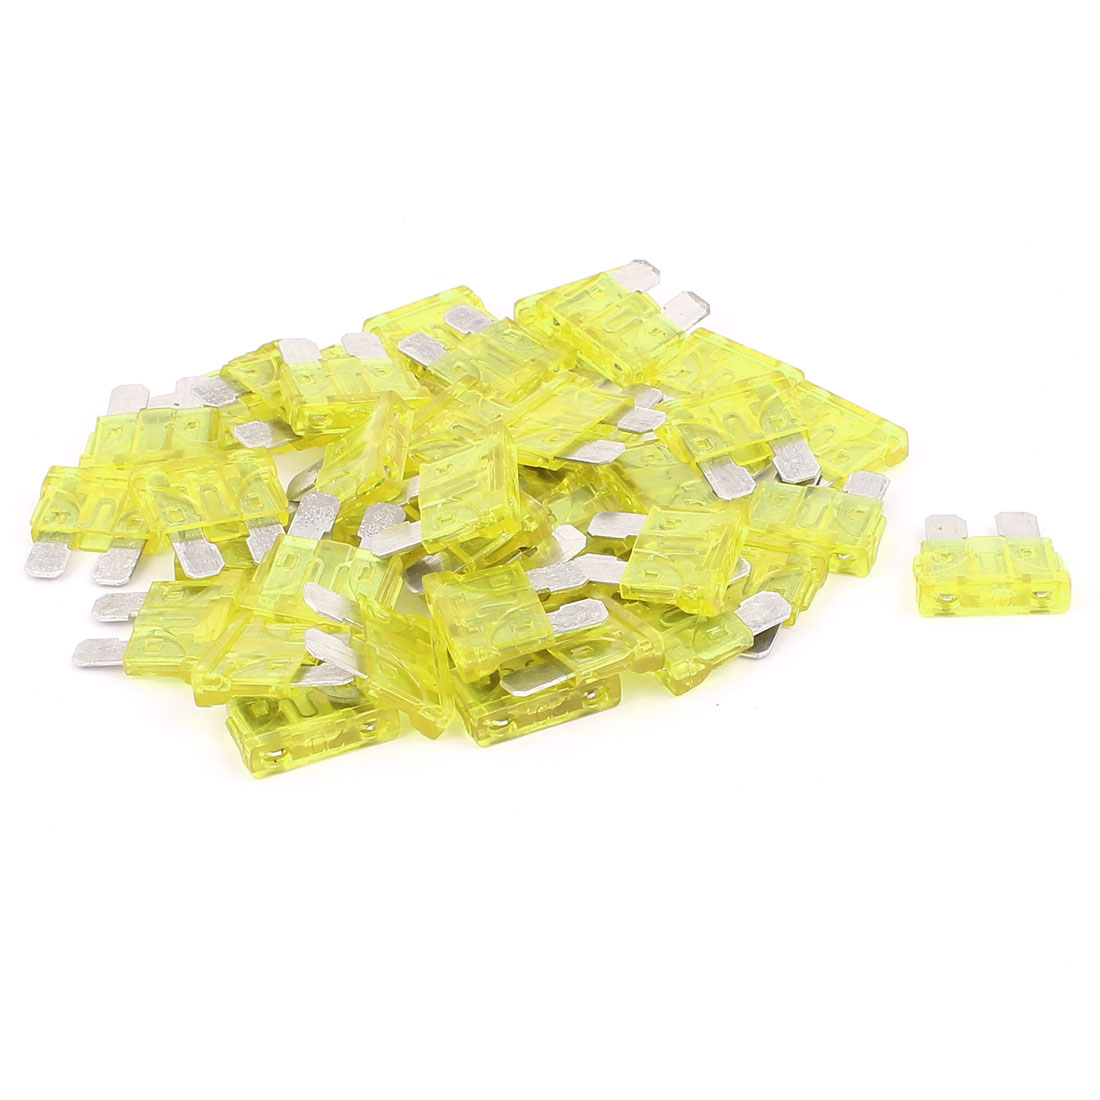 40pcs Yellow 20A Plastic Shell Blade Fuse for Auto Car Truck Motorcycle SUV